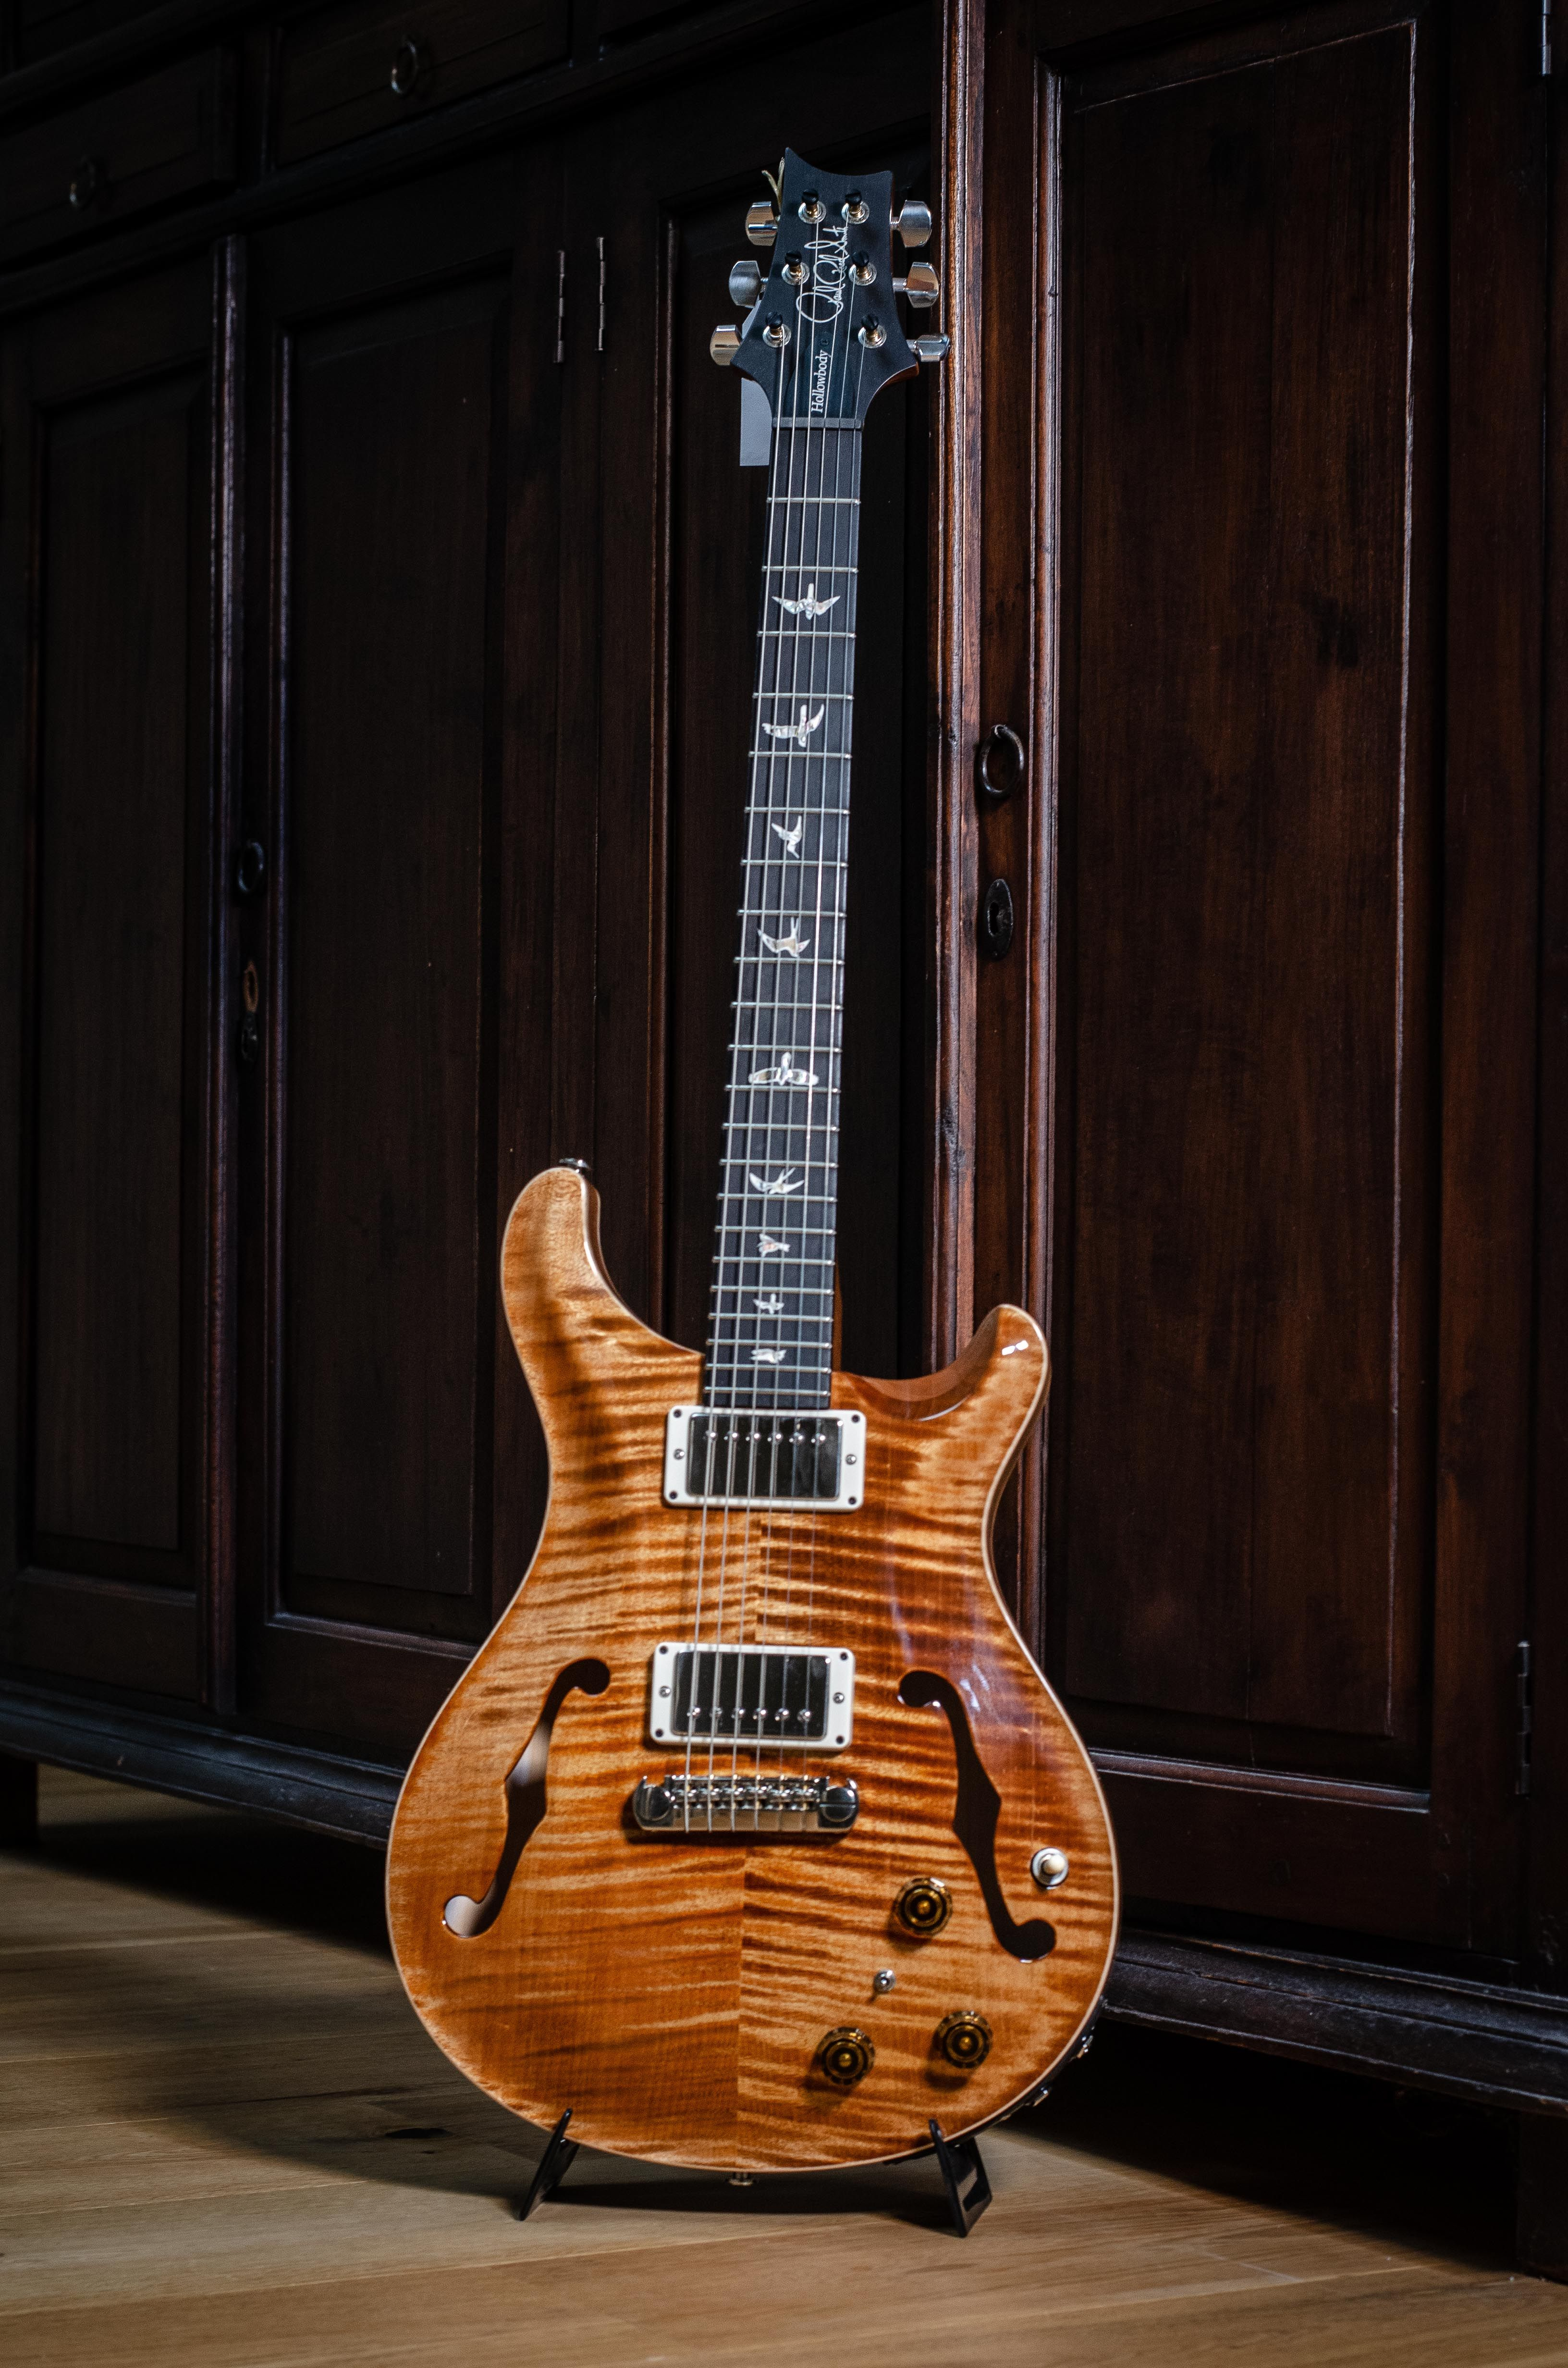 Prs Hollowbody Ii With Limited Copperhead Finish With Brilliant Acoustics And A Vast Array Of Tones The Hollowb Electric Guitar Guitar Acoustic Guitar Amp